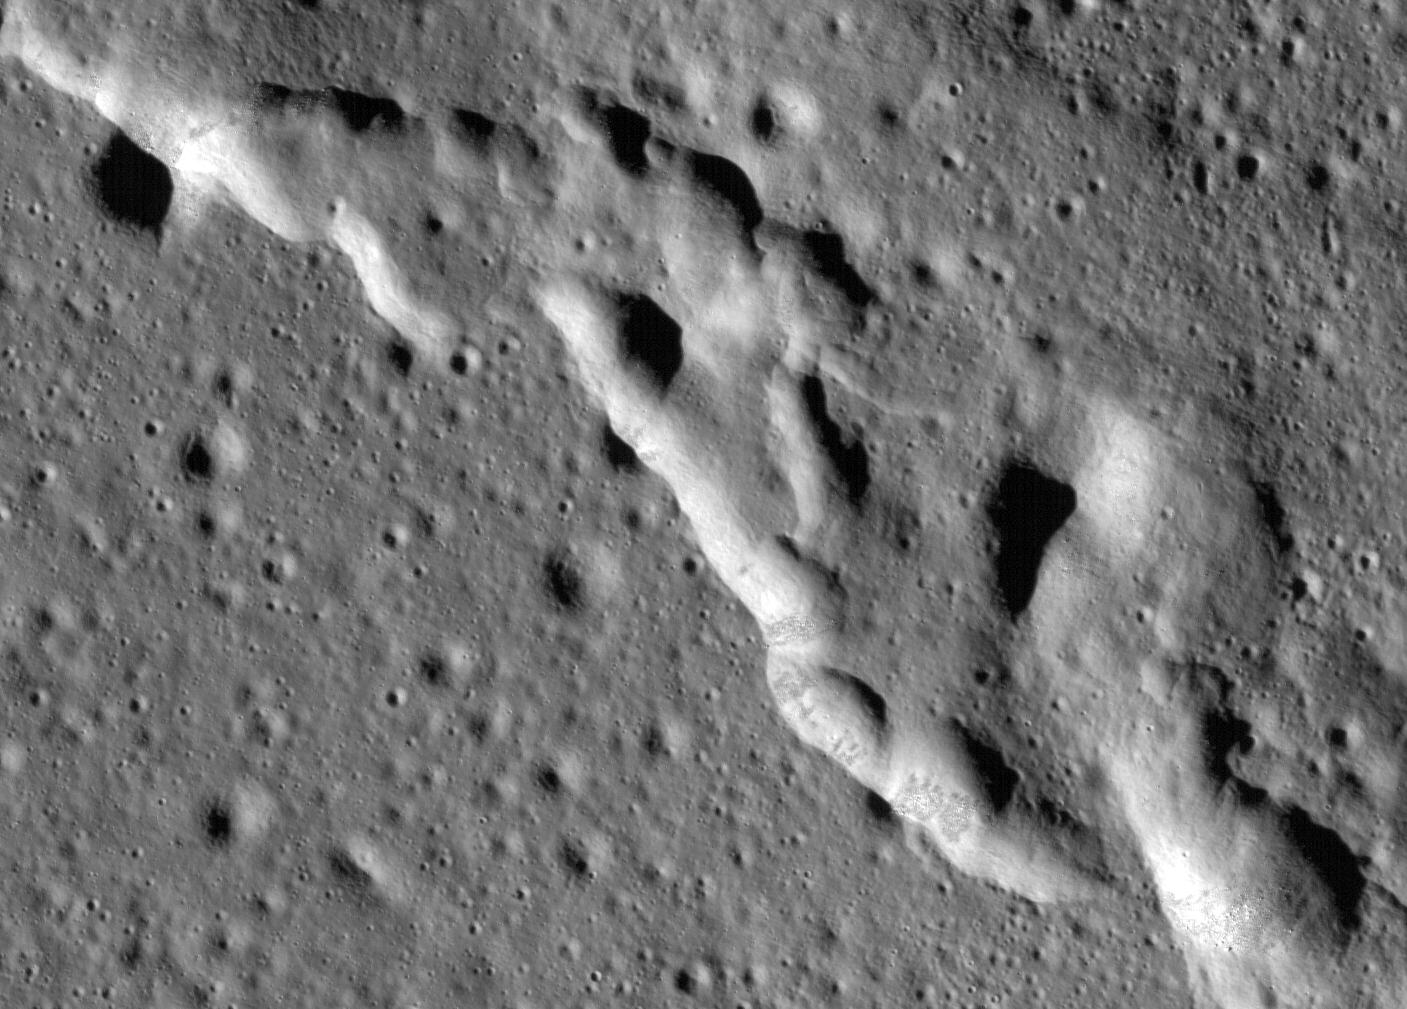 A closeup of the Mare Frigoris Ridges. Photo Credit: NASA